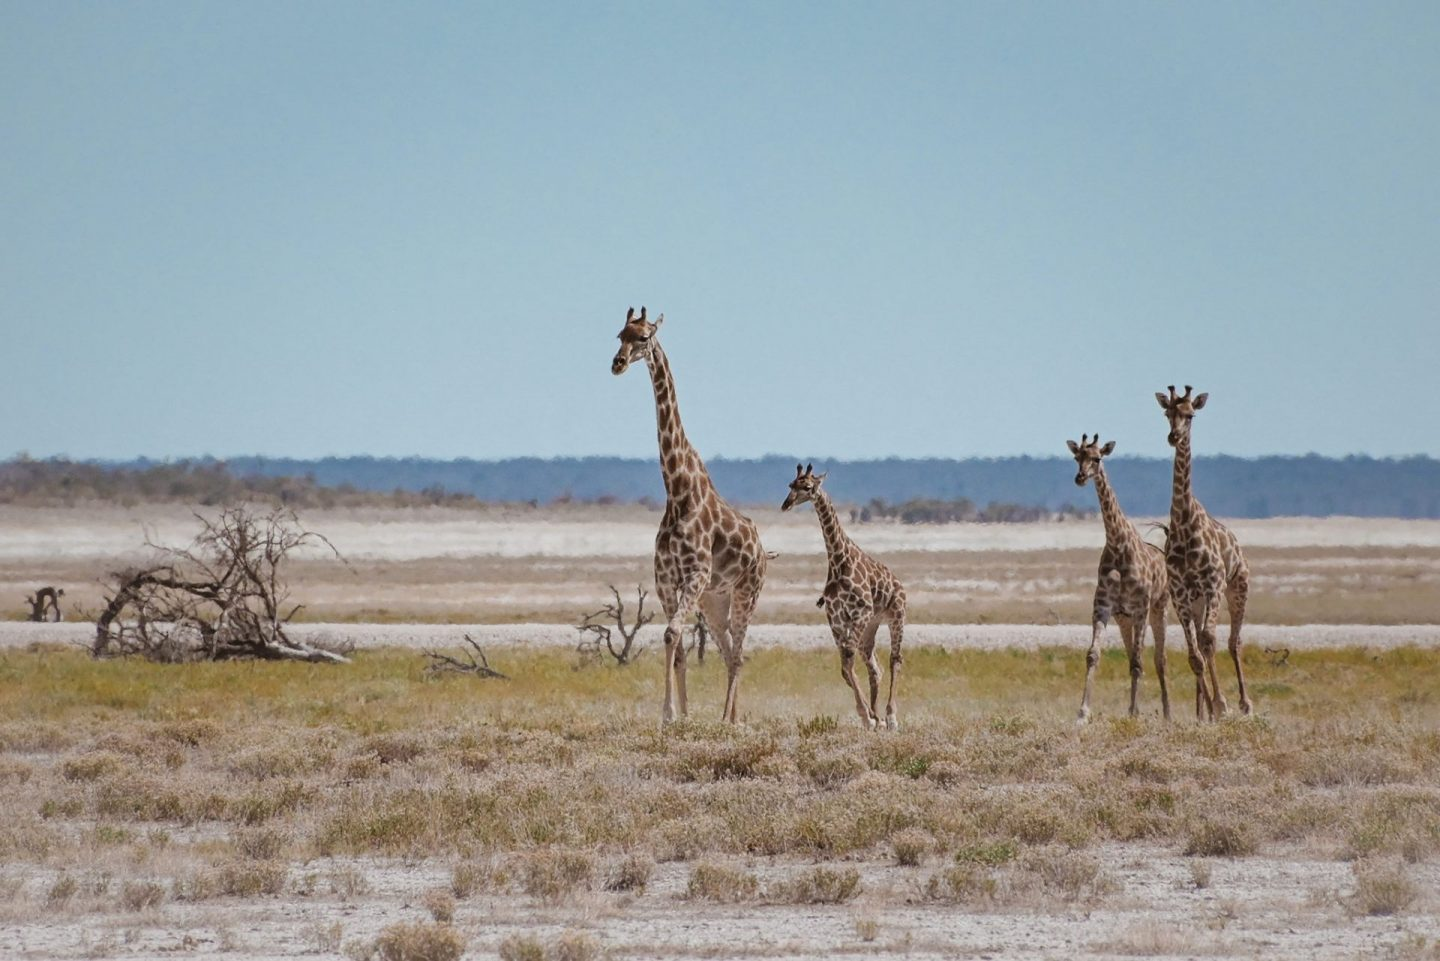 A group of giraffes on Namibia self drive safari in Etosha National Park